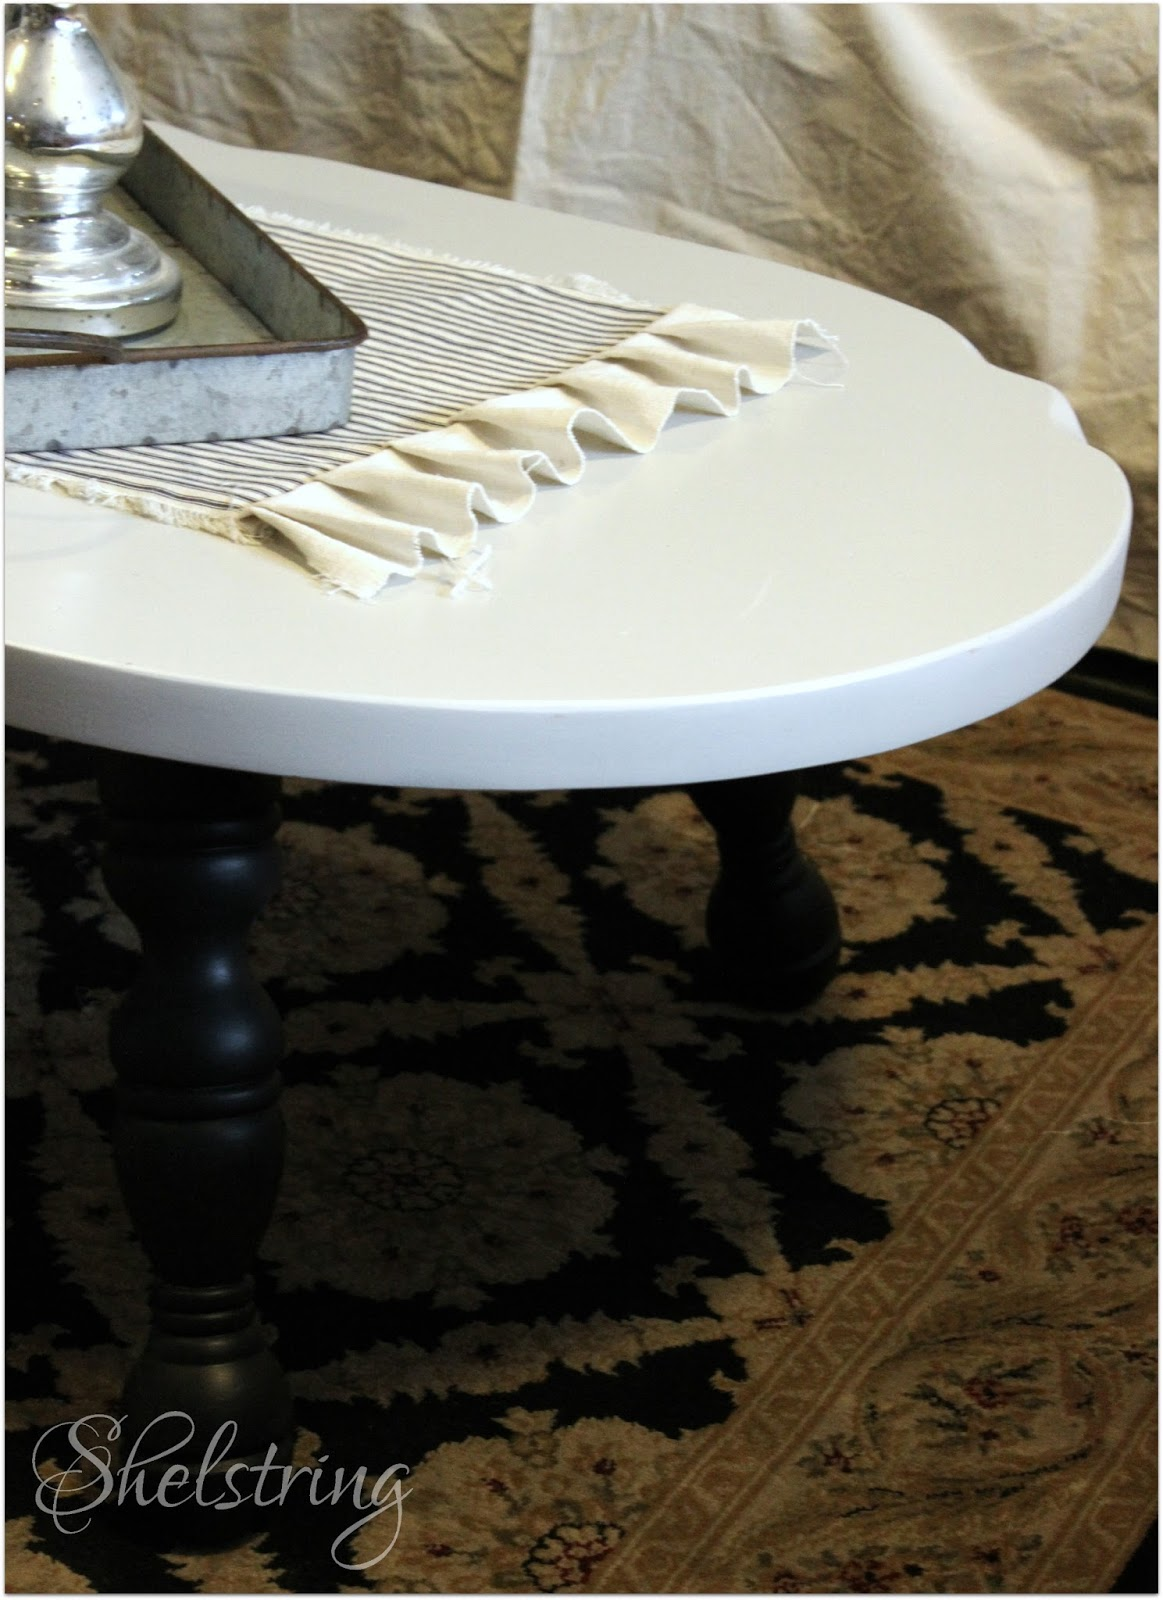 Super Shelstring Blog March Madness 8 Queen Bee Coffee Table Lamtechconsult Wood Chair Design Ideas Lamtechconsultcom